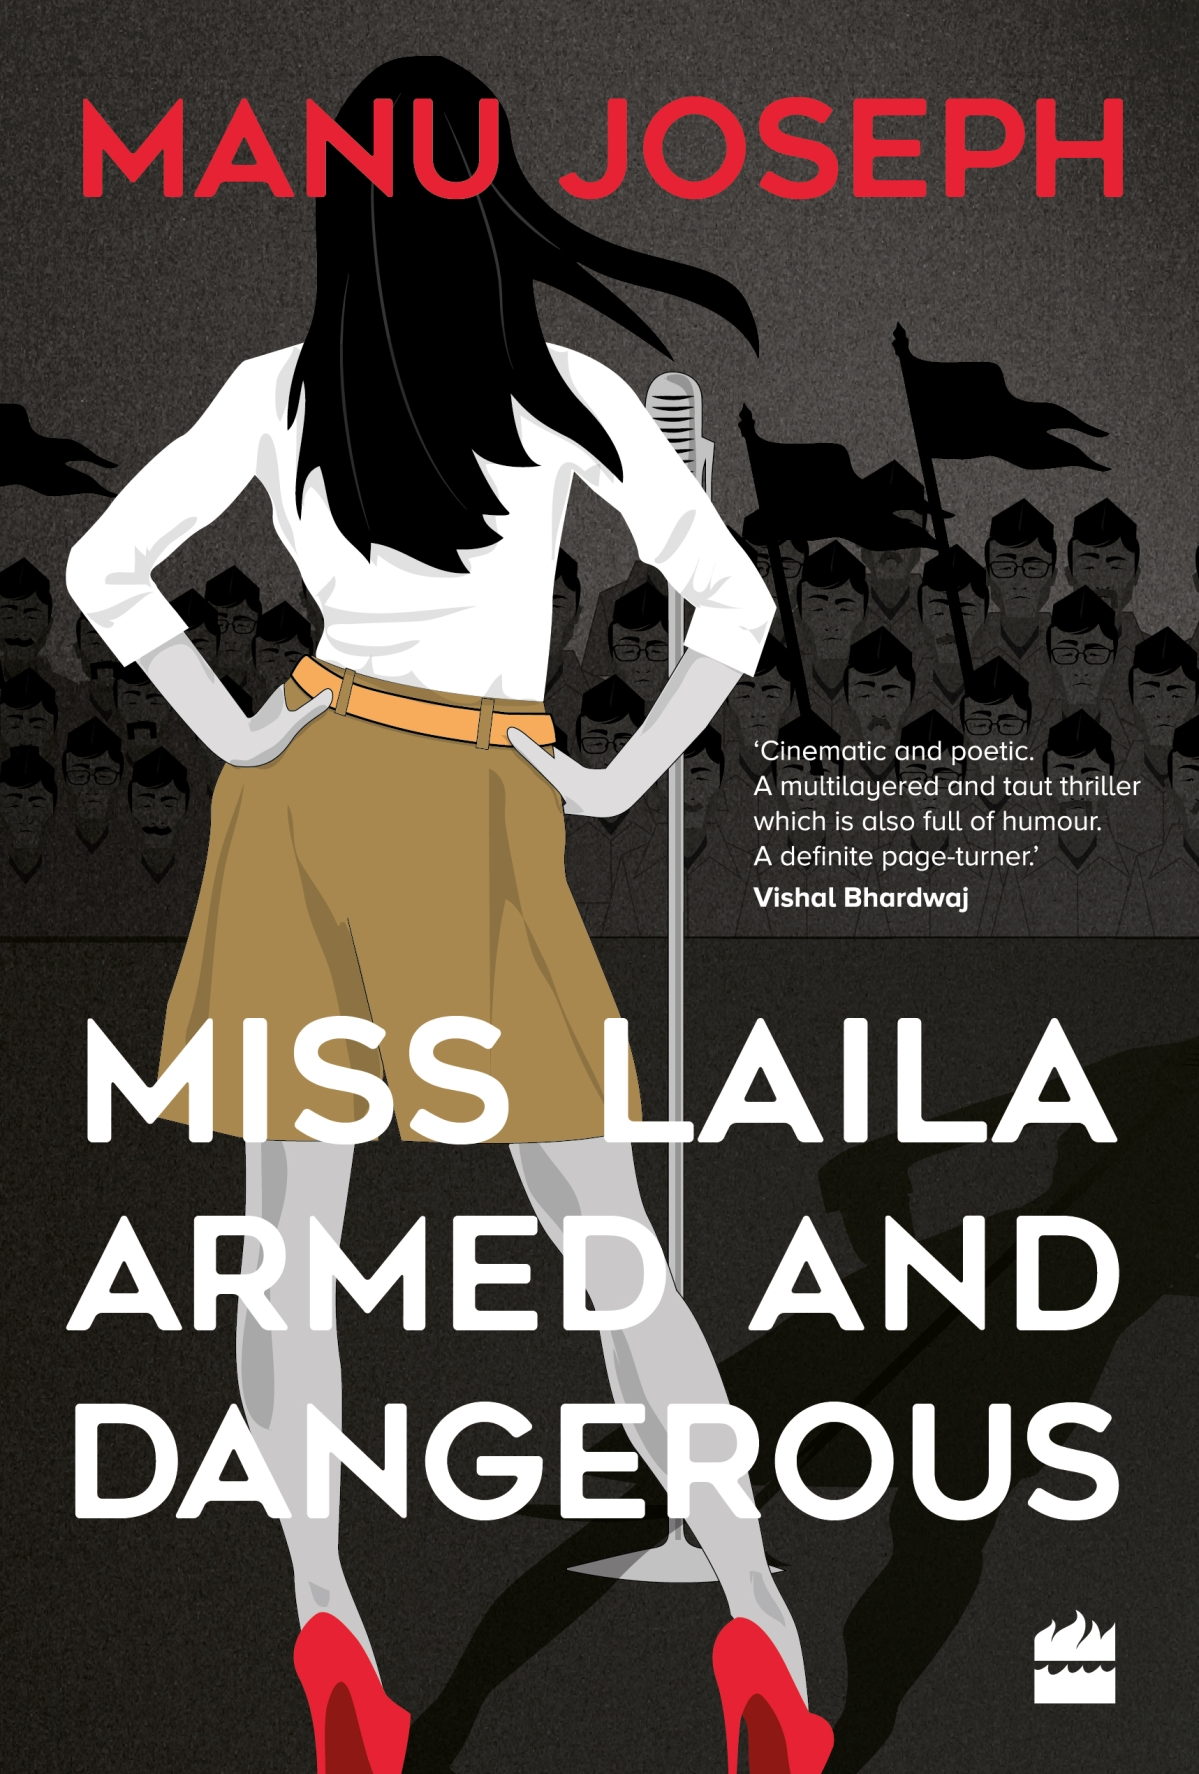 Book Review: Manu Joseph's India, Armed and Dangerous - The